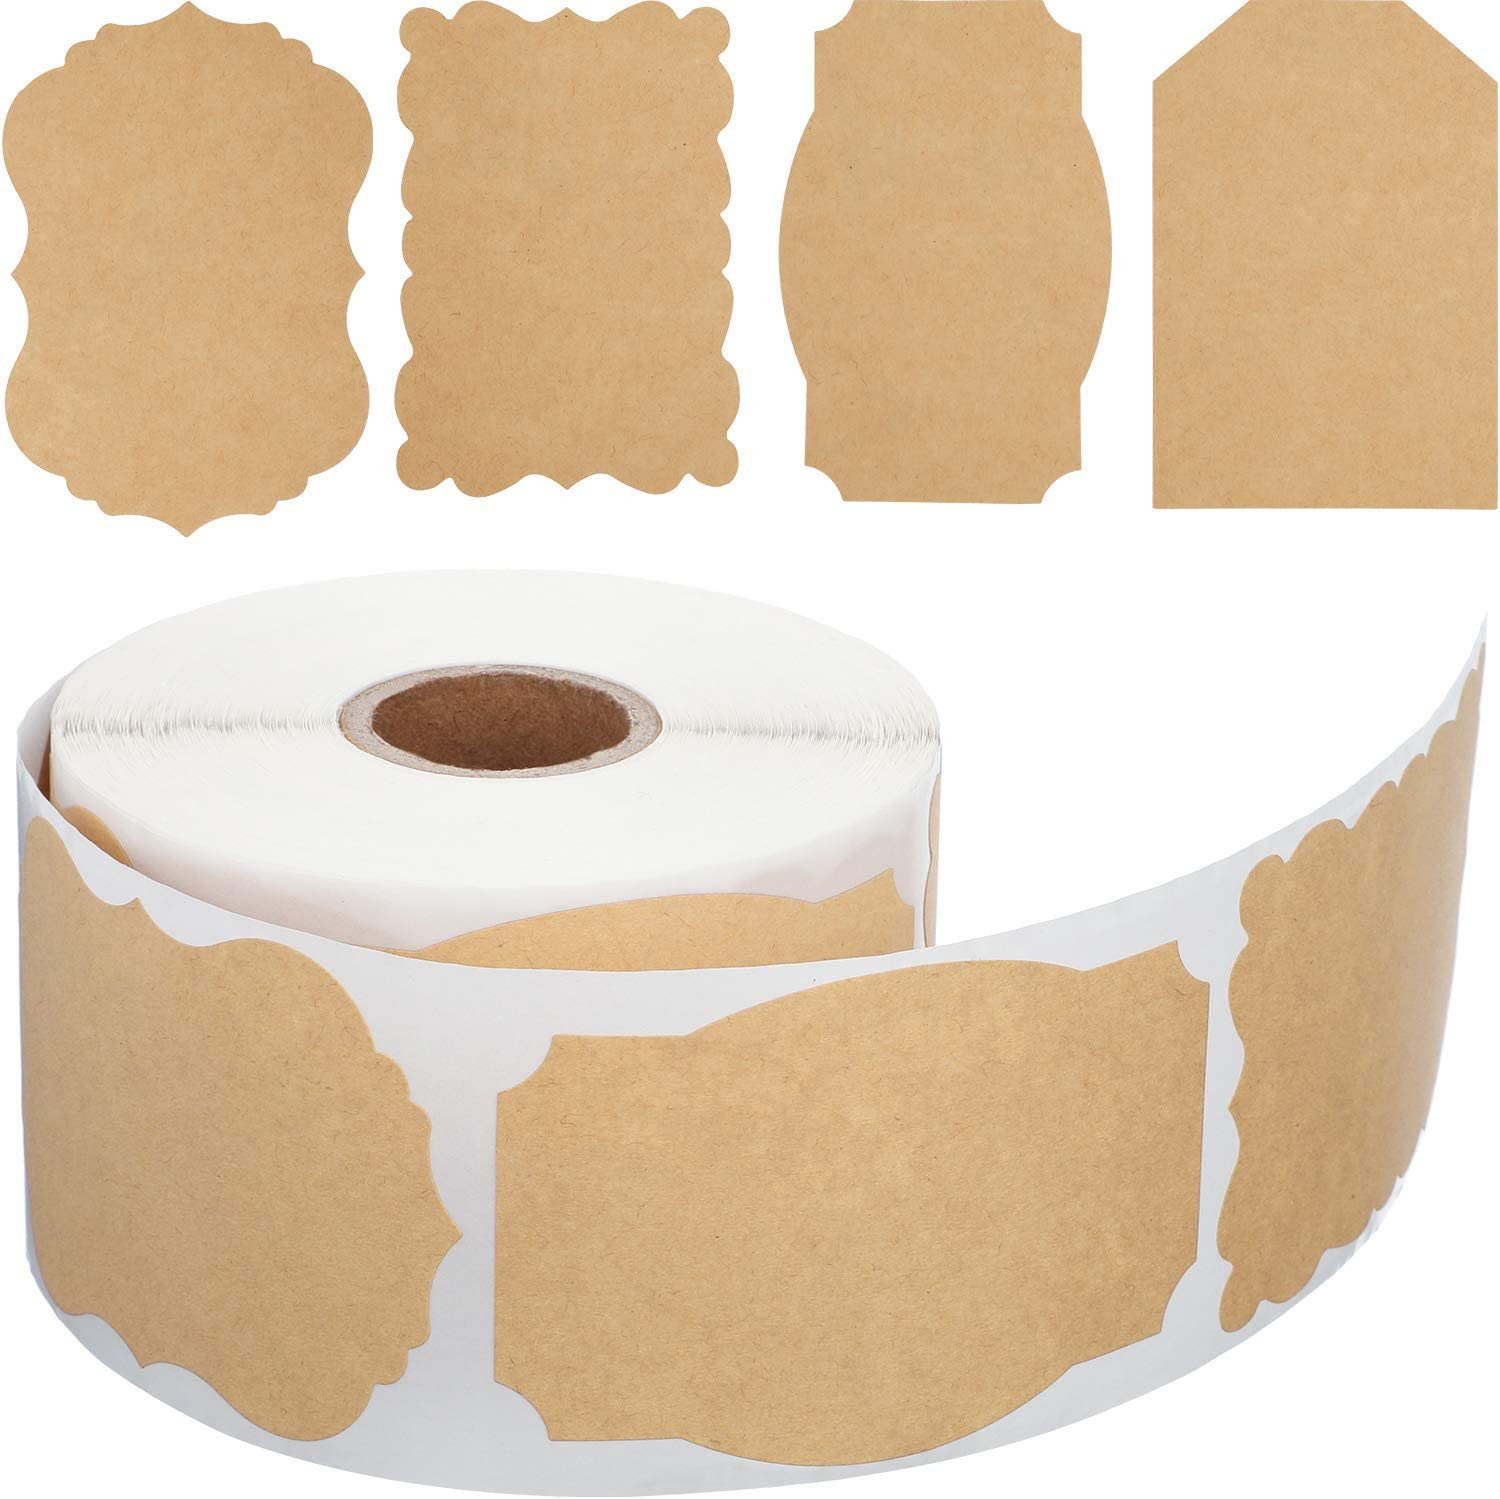 400 Pieces Kraft Gift Paper Tags 2 x 3 Inches Blank Brown Present Labels Stickers Name Tags for Holiday Glass Bottle Gift Supplies